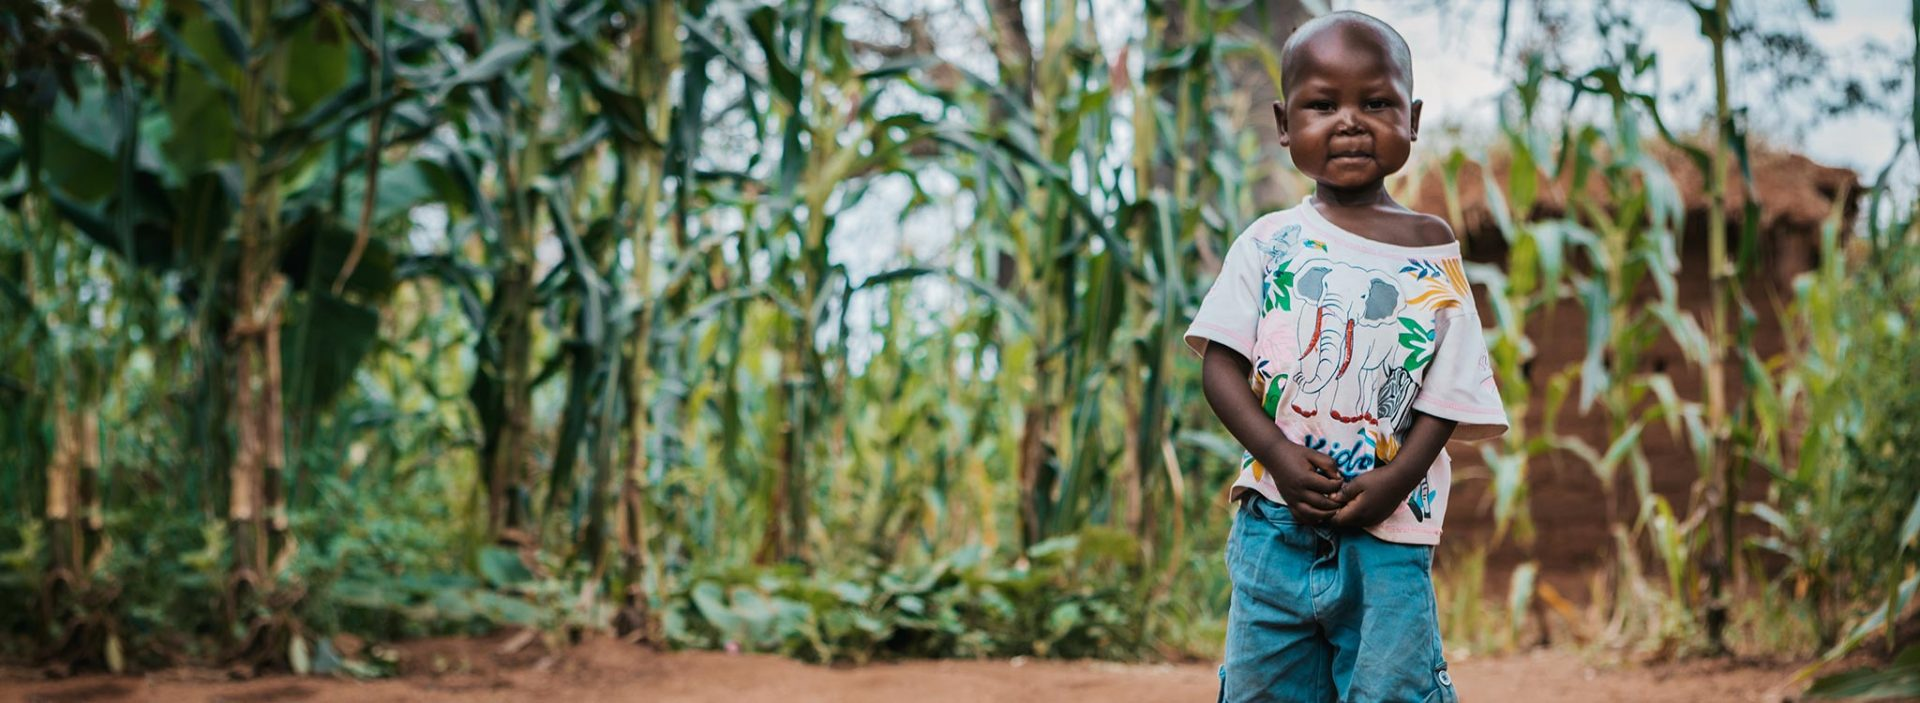 Four-year-old Rodrick was treated for malnutrition at an Action Against Hunger treatment centre in Tanzania.